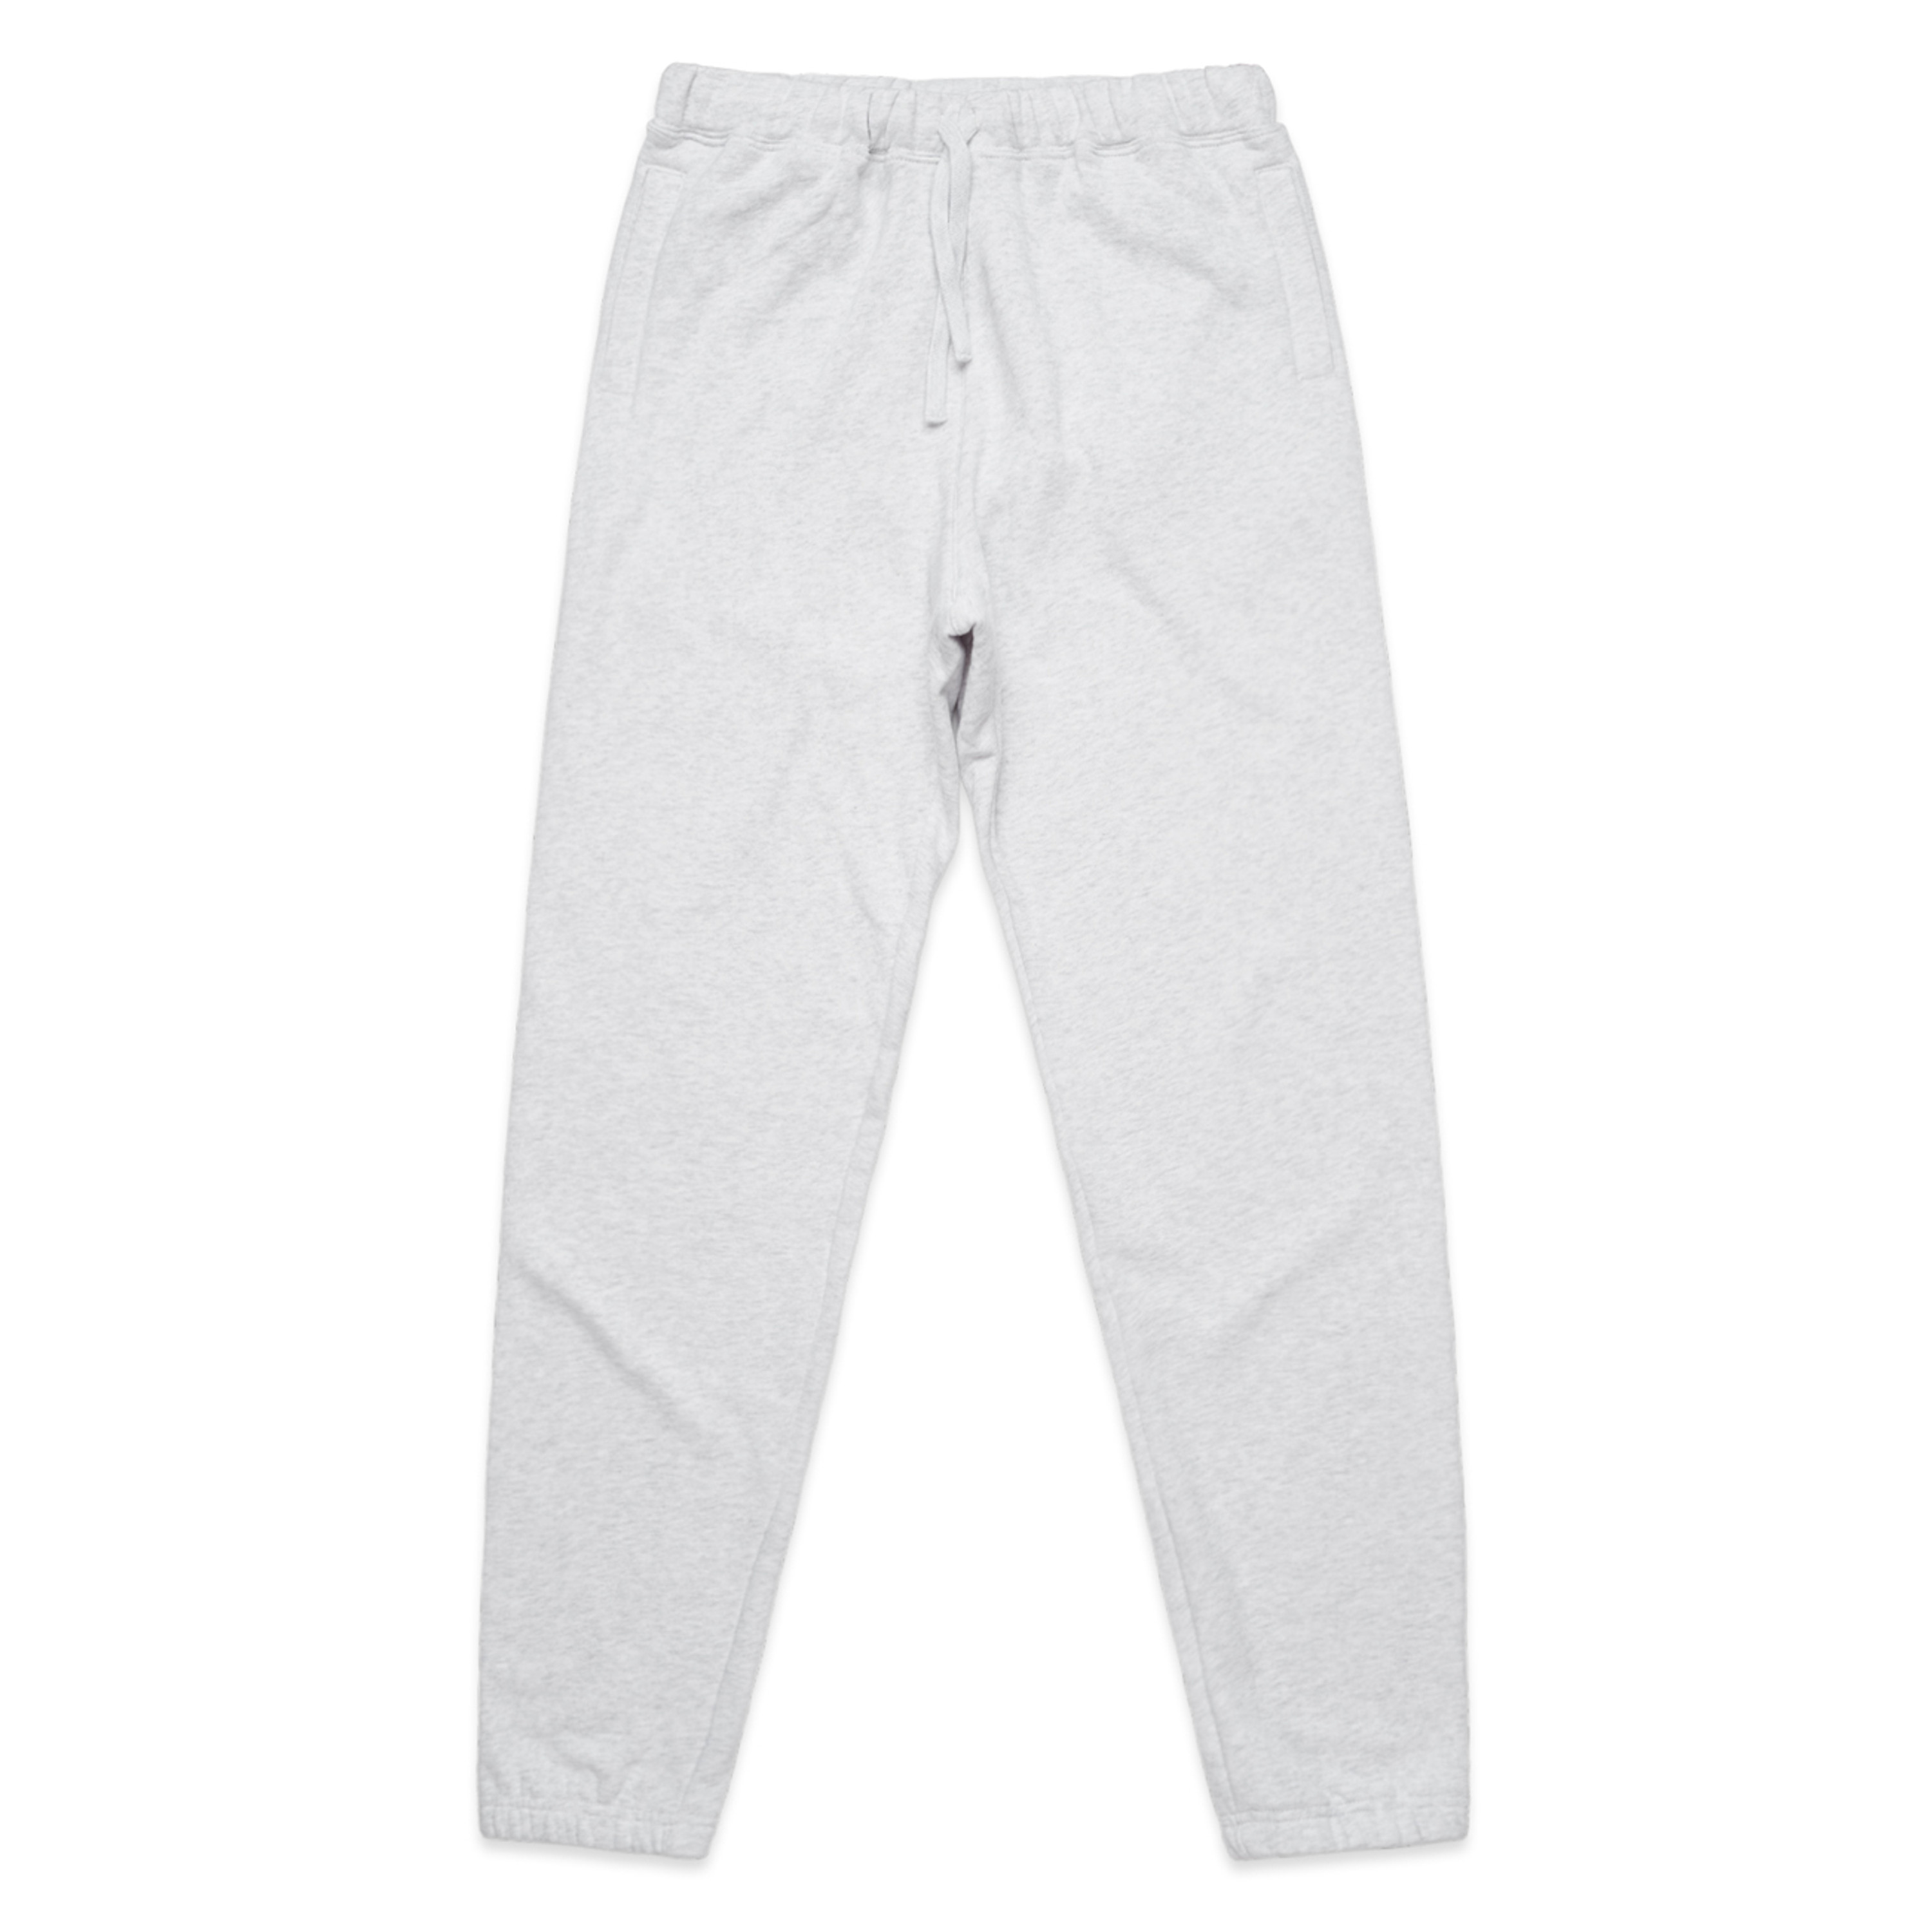 Wo's Surplus Track Pants - 4067